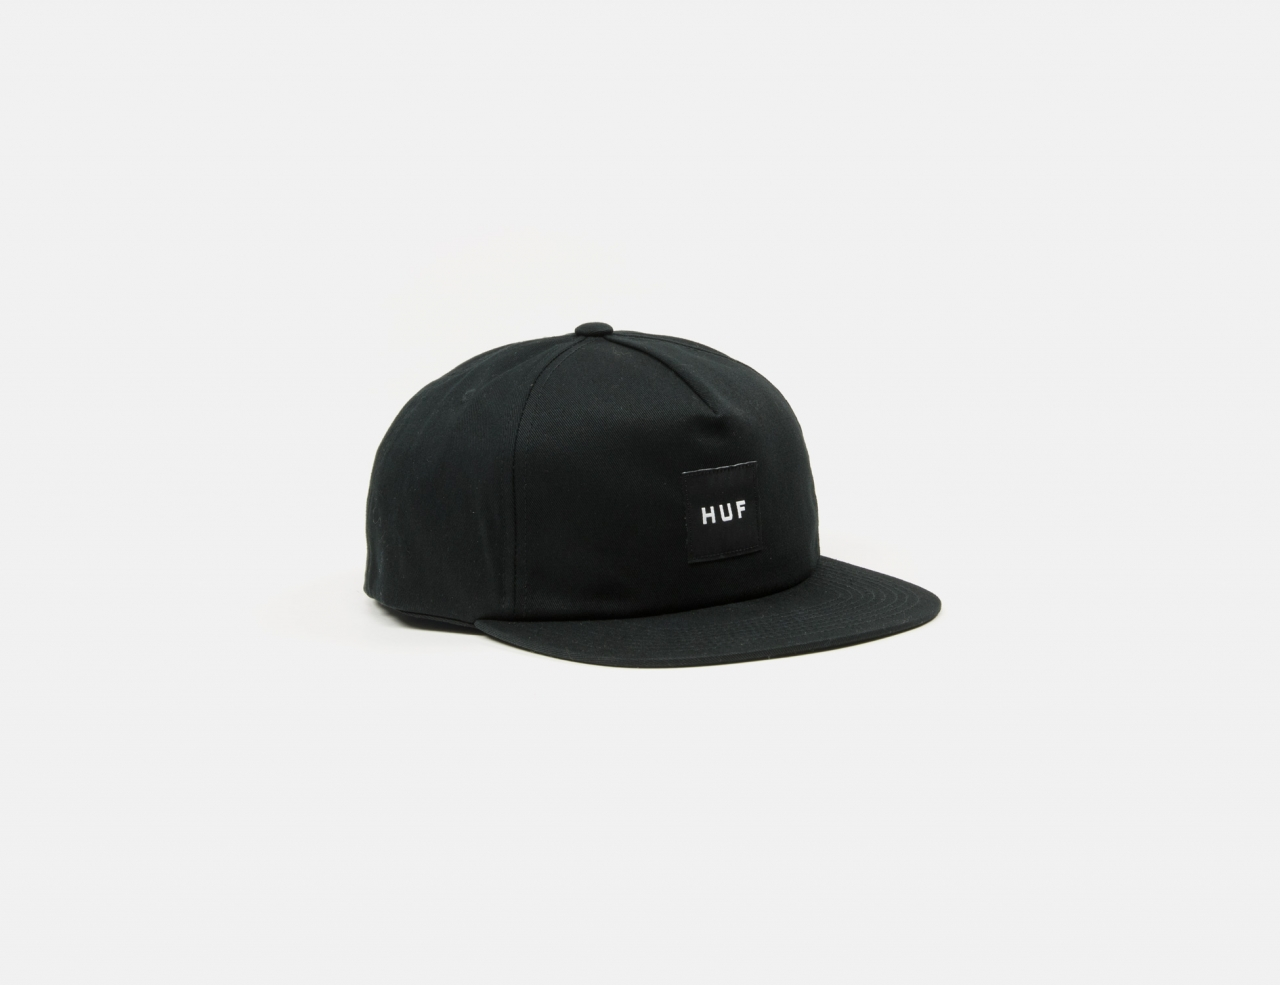 HUF Essentials Unstructured Box Snapback Cap - Black